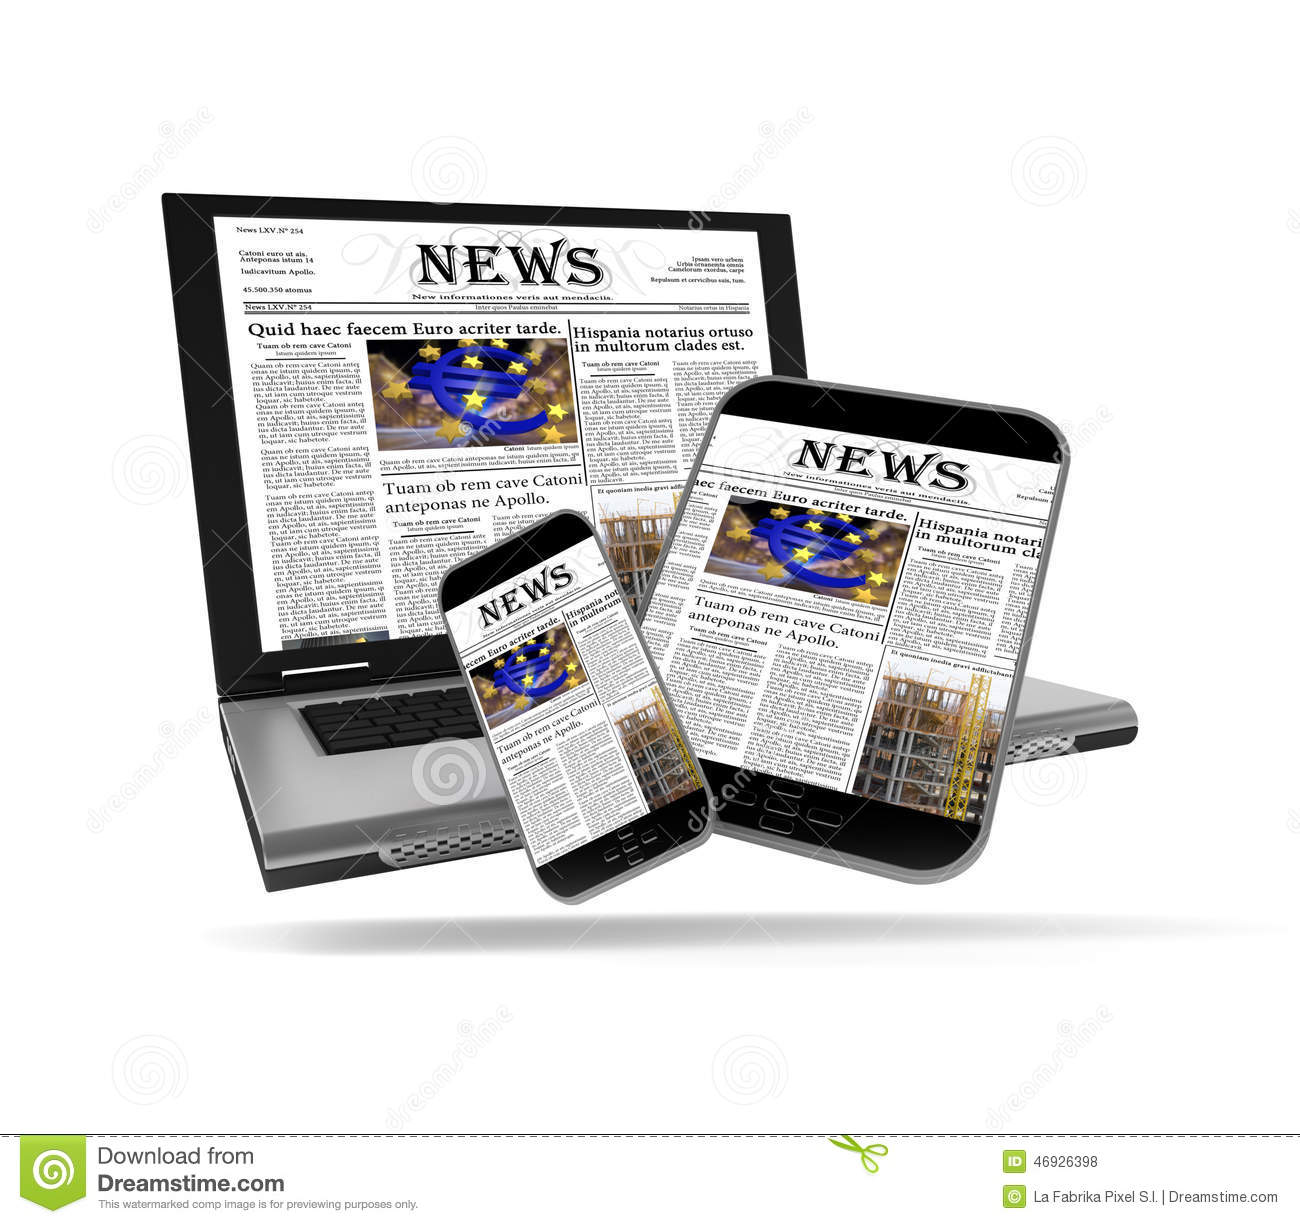 how news on the internet is Online users make clear distinctions between different kinds of websites people are much more trusting of news websites, and far more skeptical of the accuracy personal weblogs.